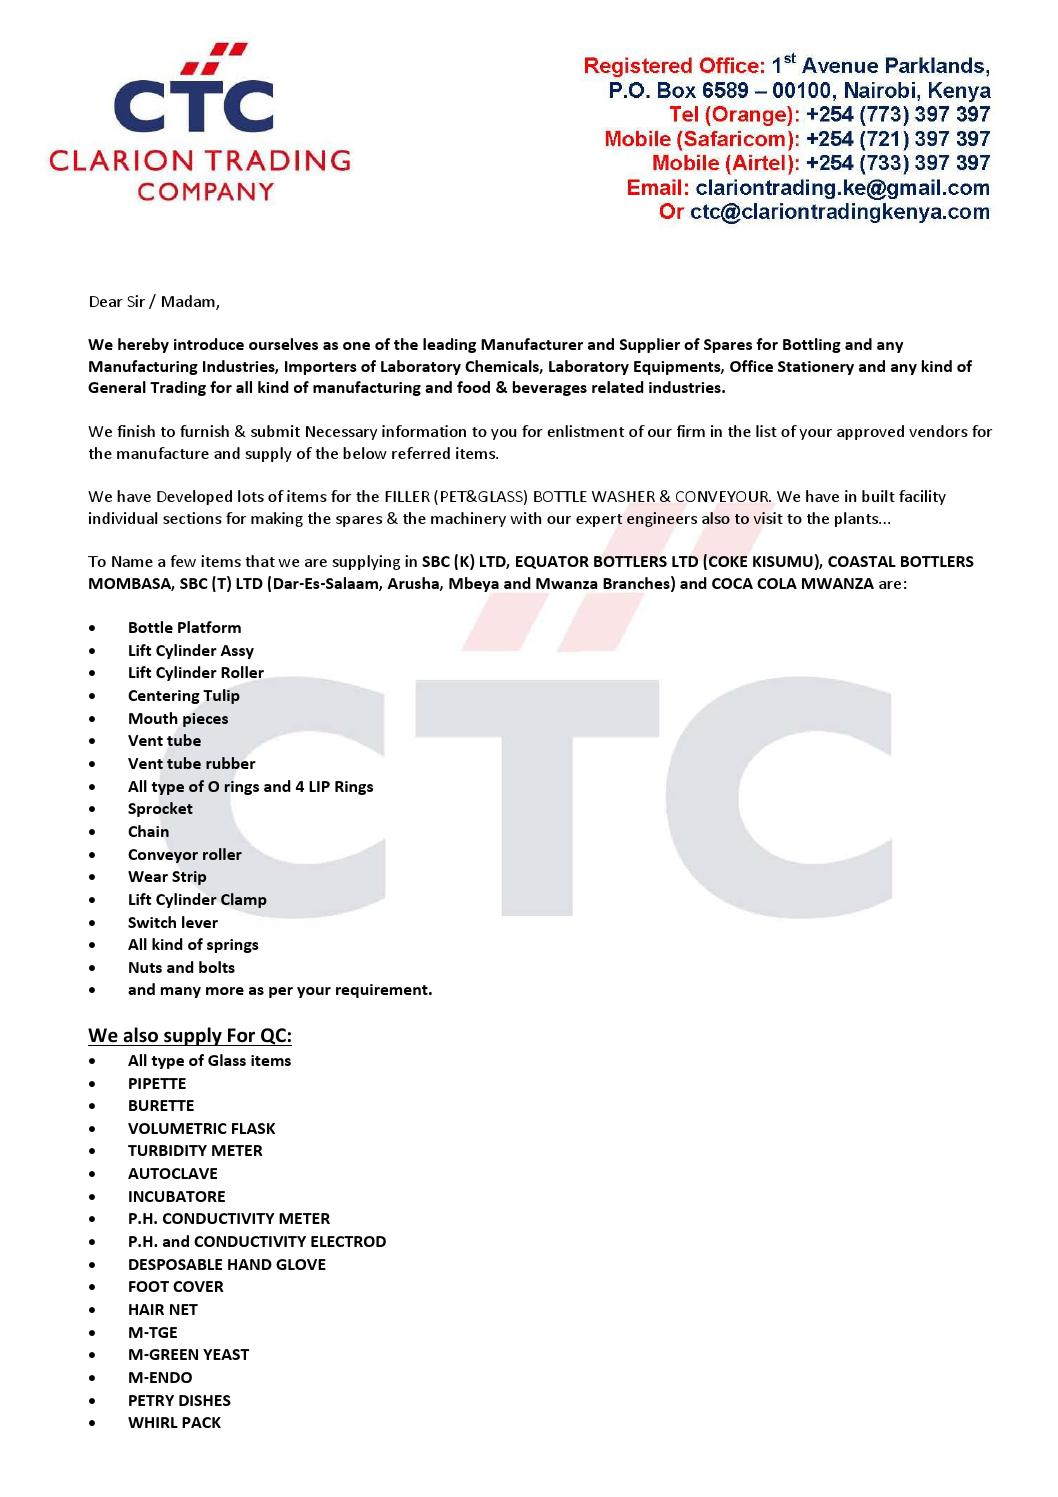 Letter to Introducing a Company